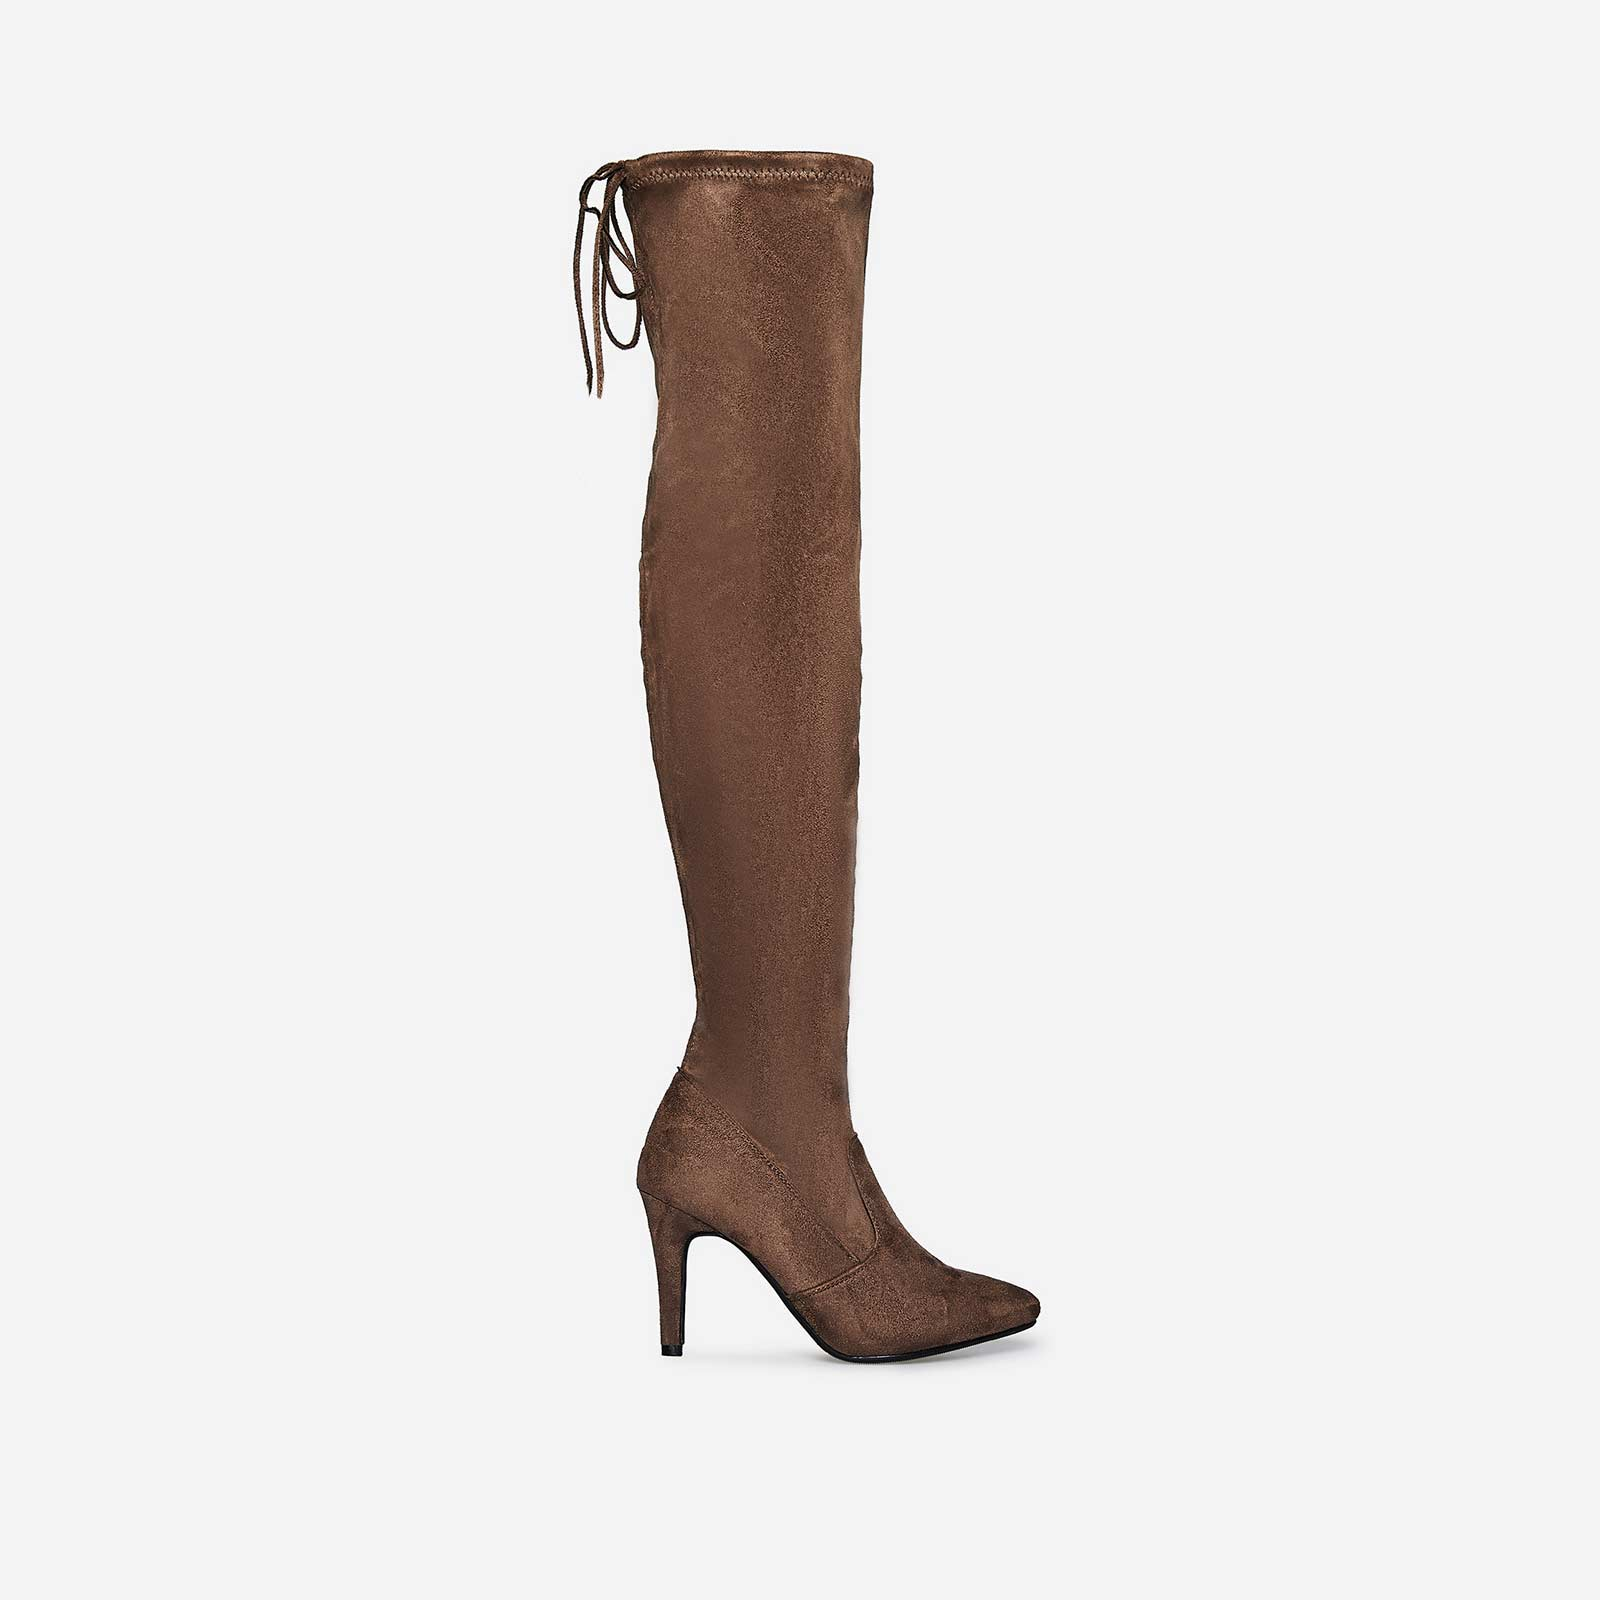 Sia Over The Knee Long Boot In Taupe Faux Suede